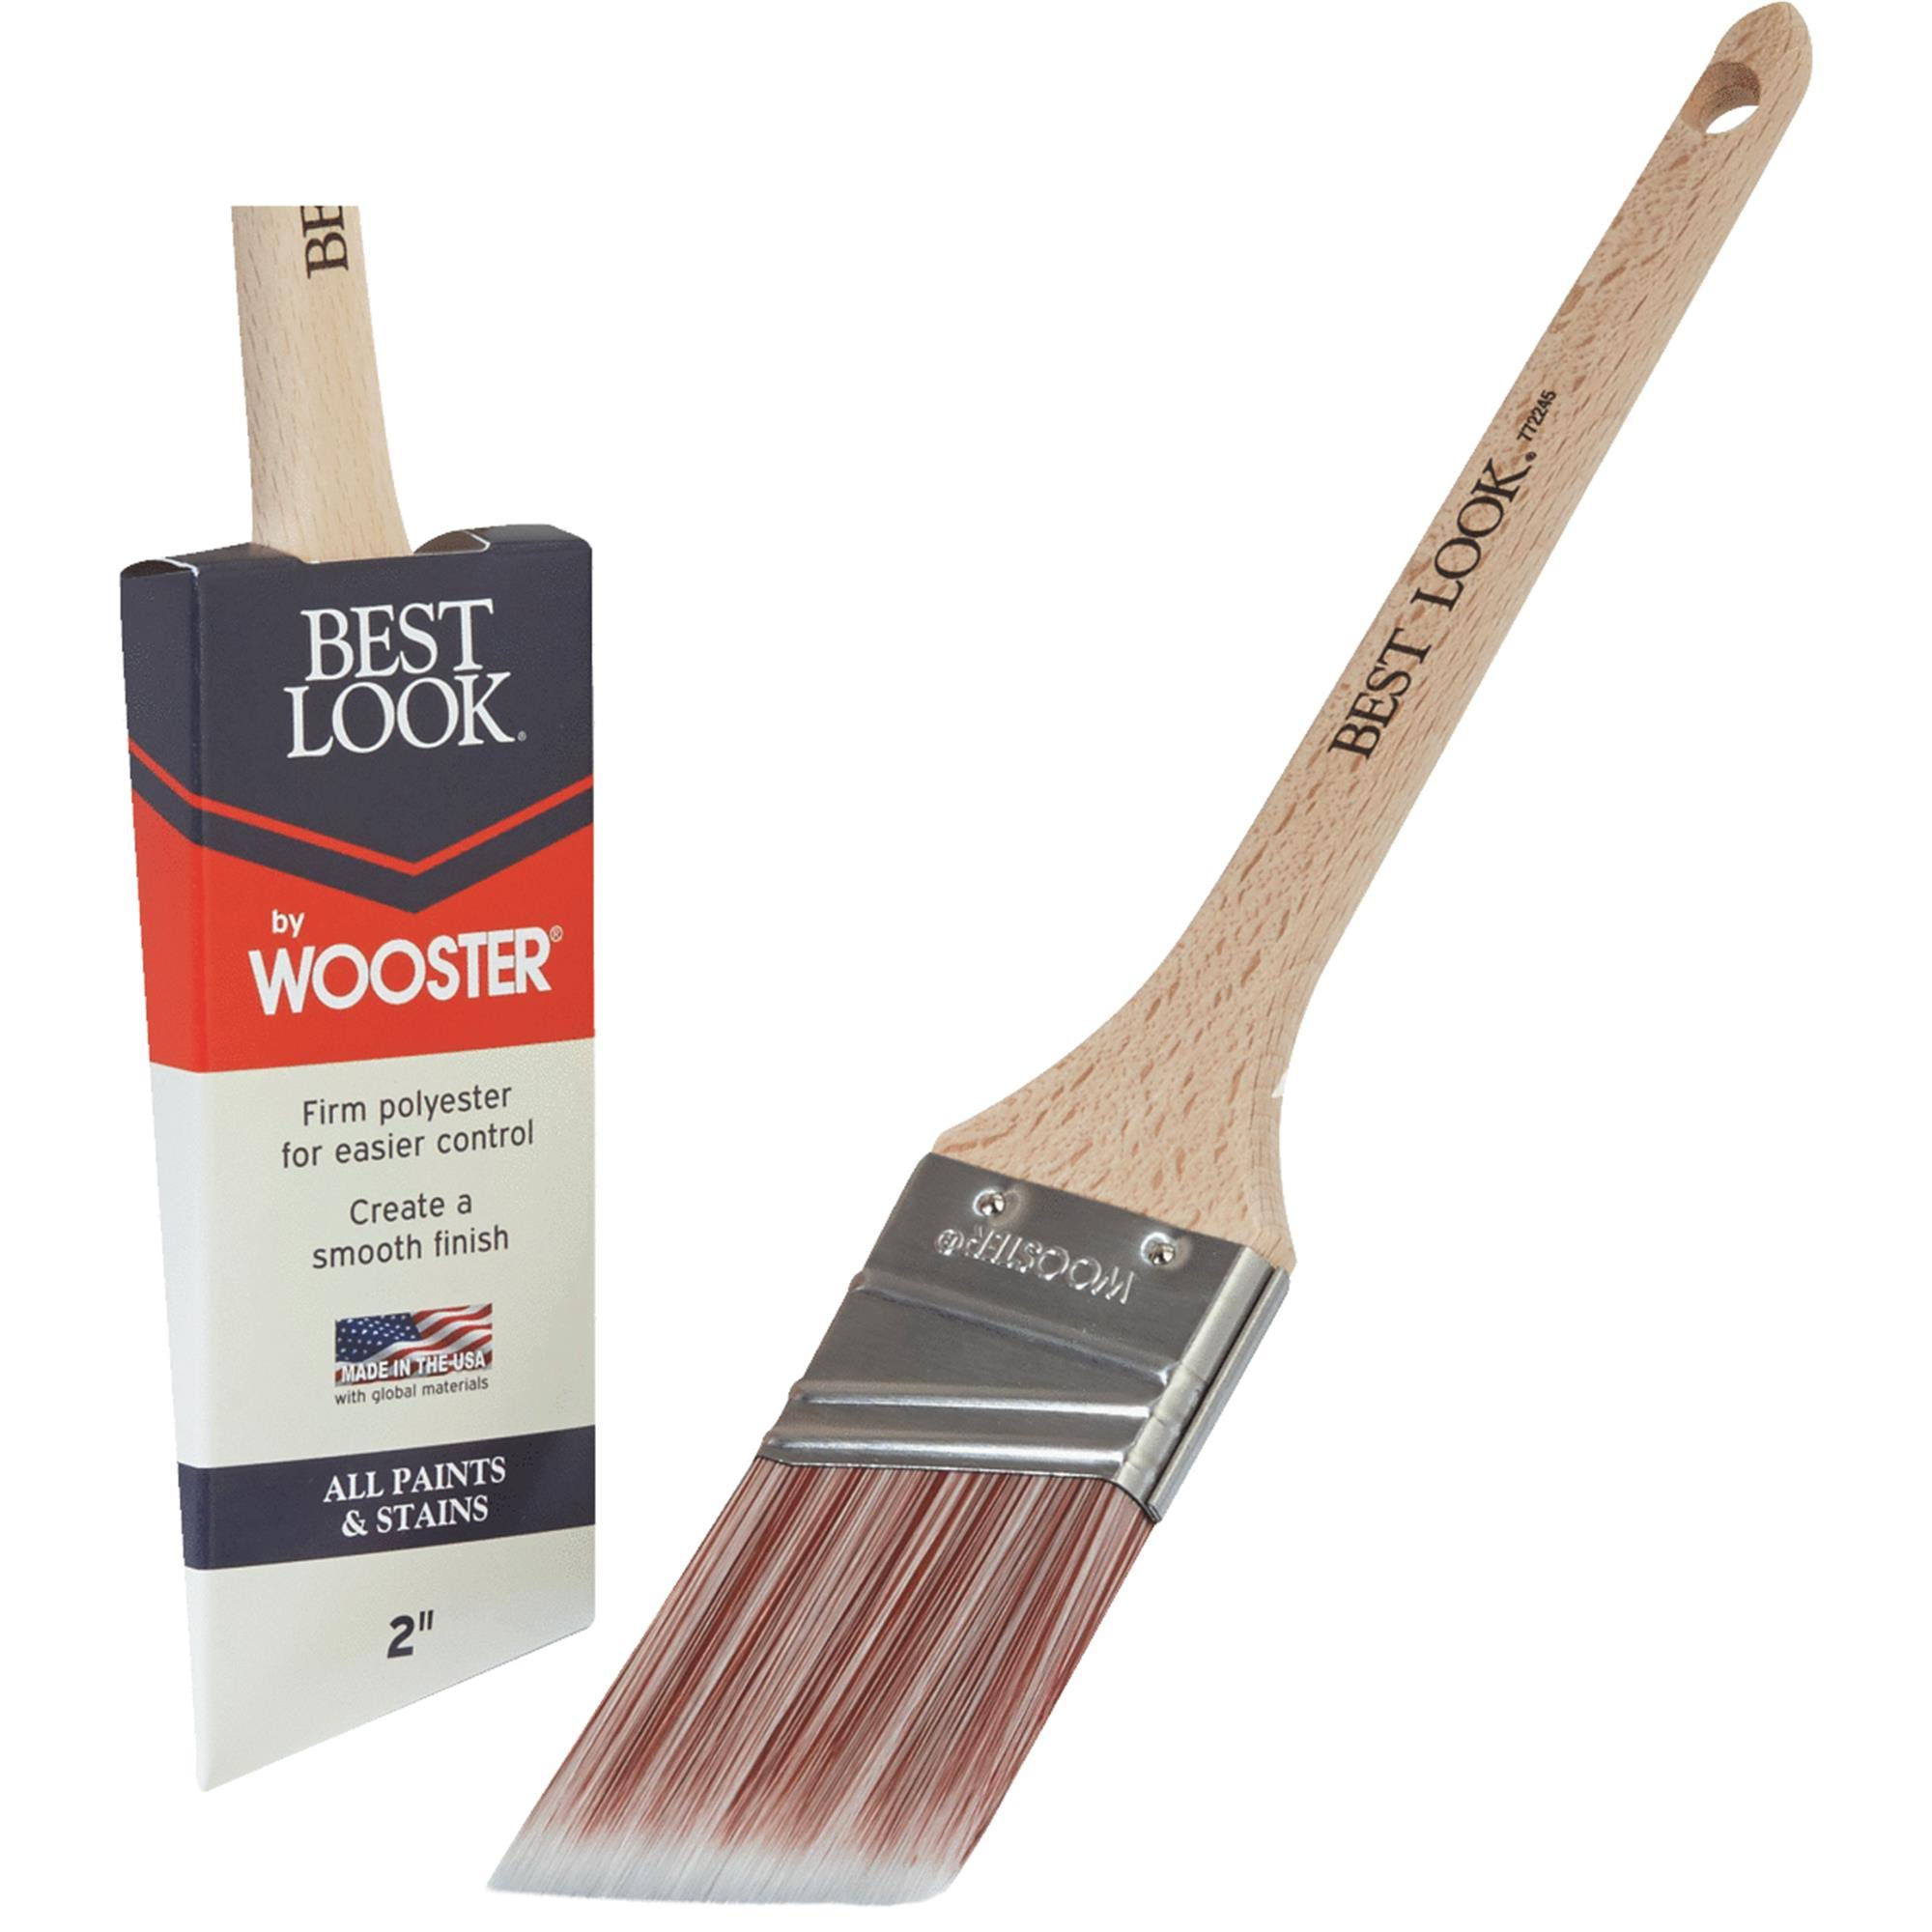 Best Look by Wooster Polyester Paint Brush - D4021-2